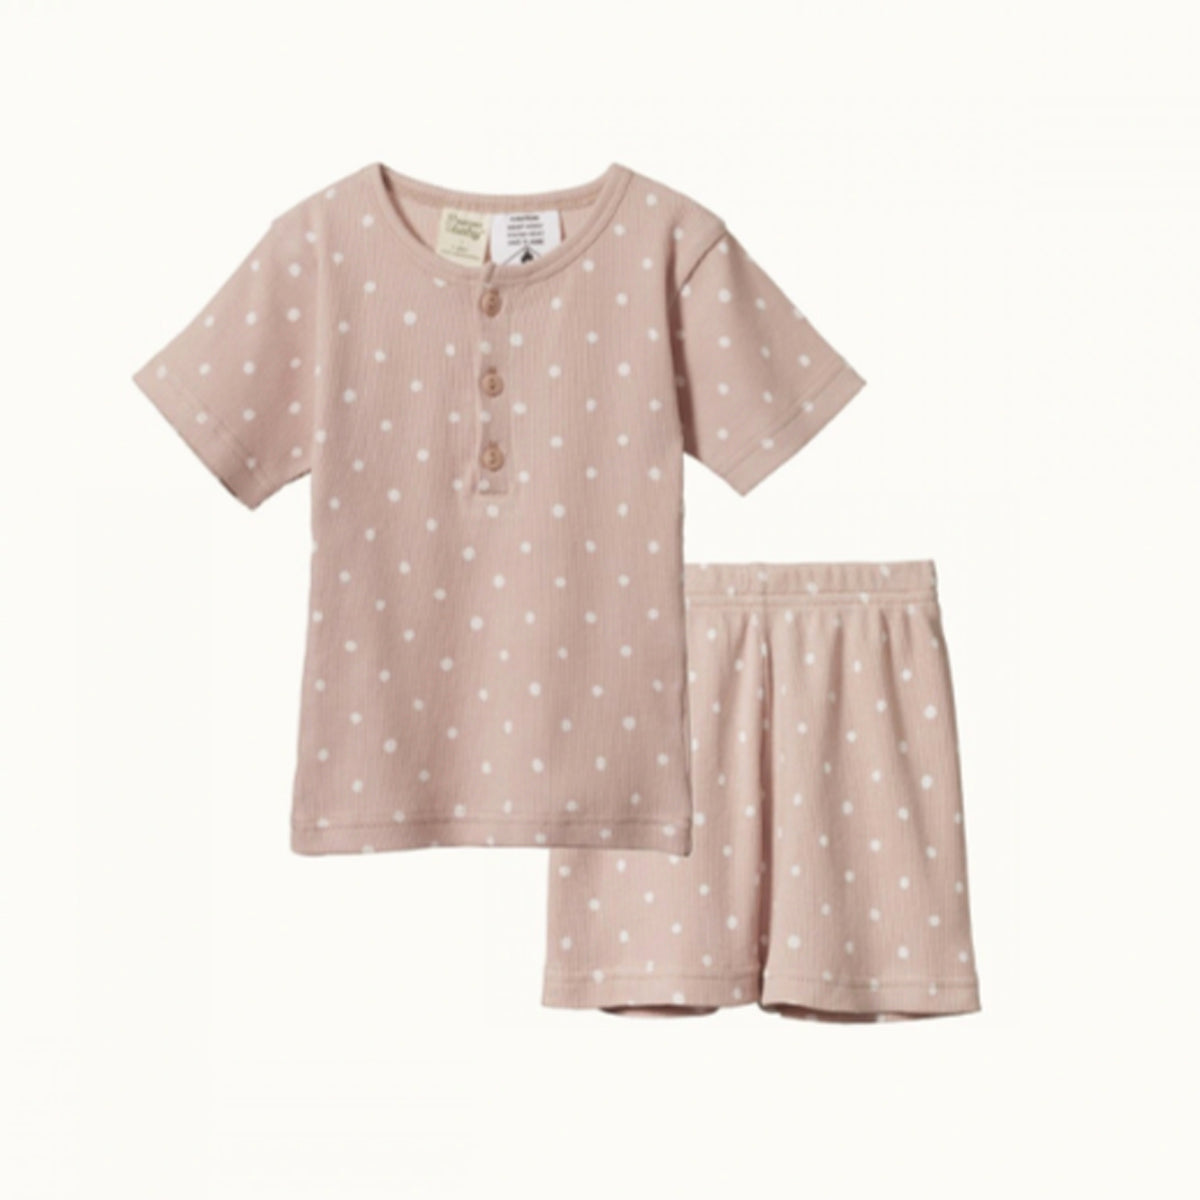 NATURE BABY  |  SHORT SLEEVE COTTON RIB PYJAMA SET |  DOTTIE ROSE BUD PRINT